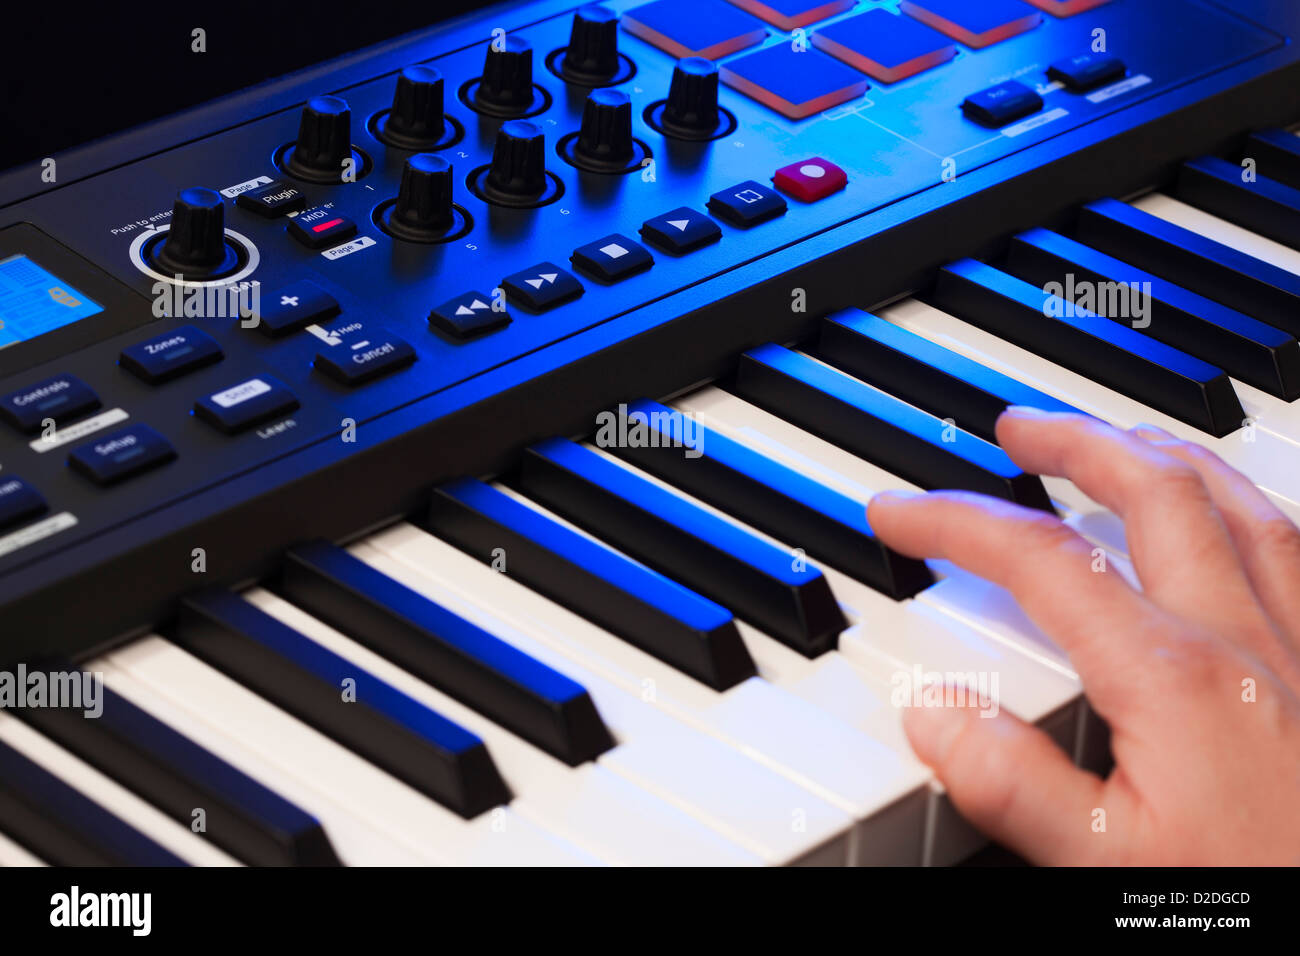 Close up of a hand playing a MIDI controller keyboard. - Stock Image